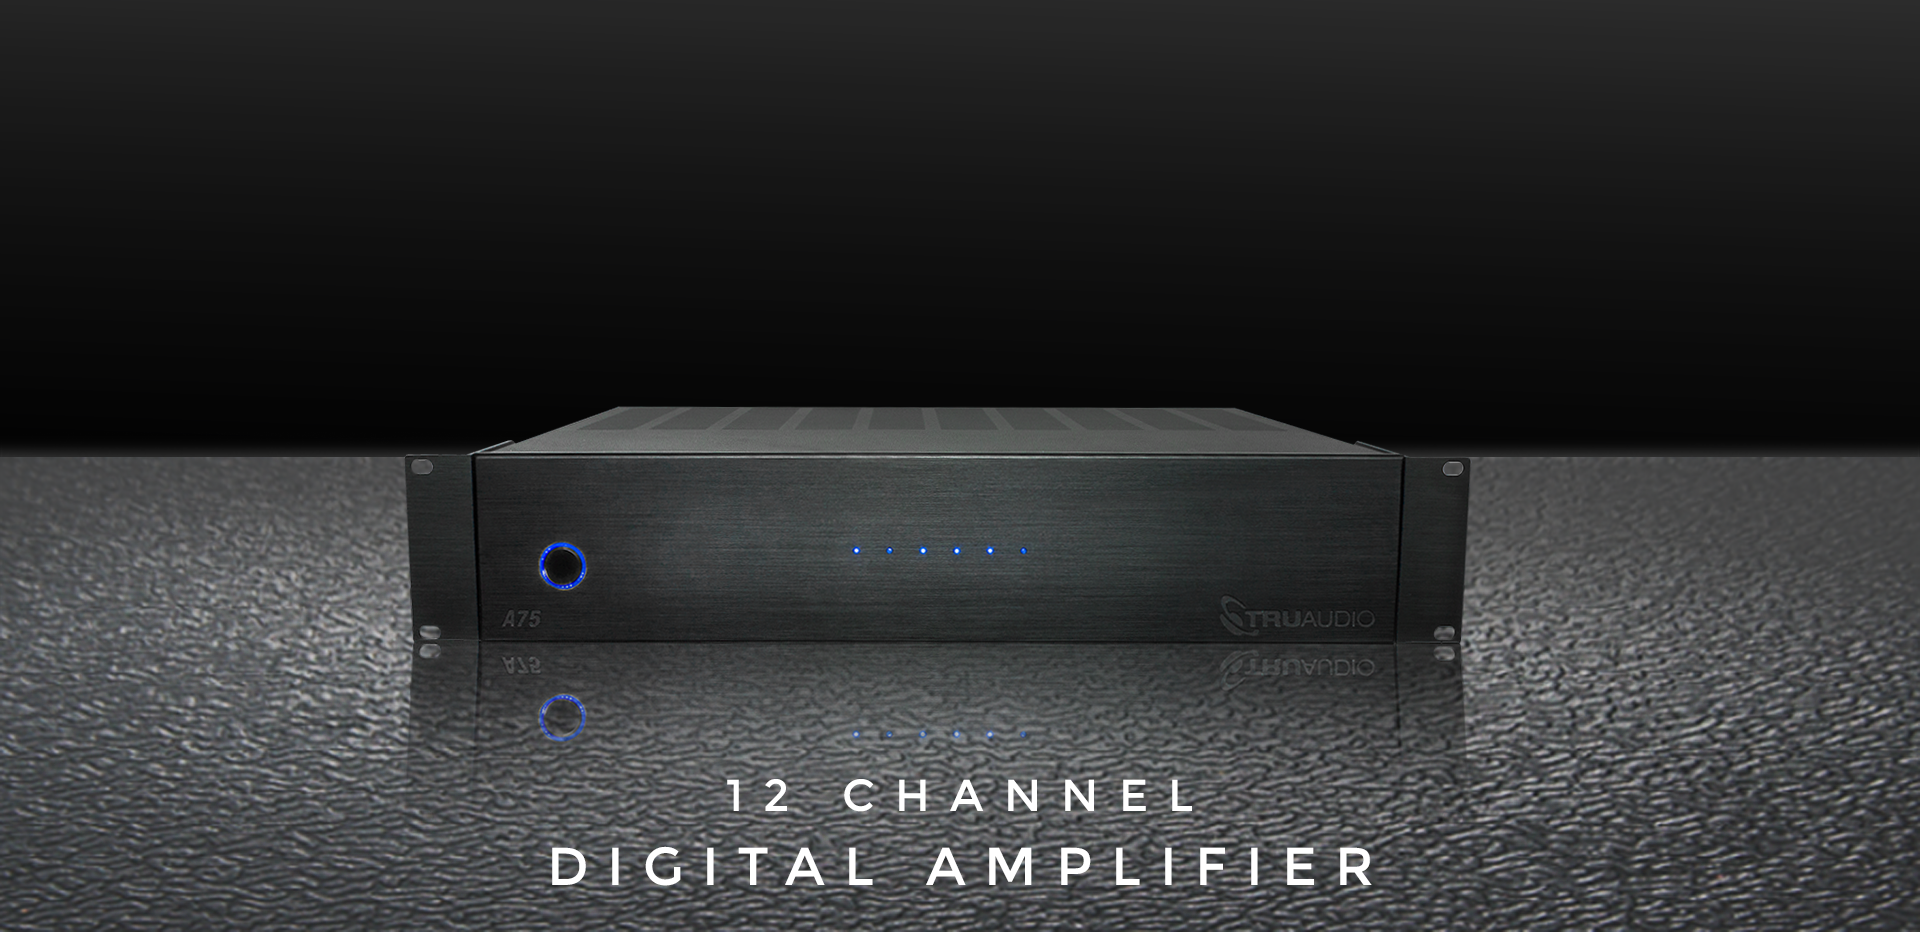 A75 Digital Amplifier